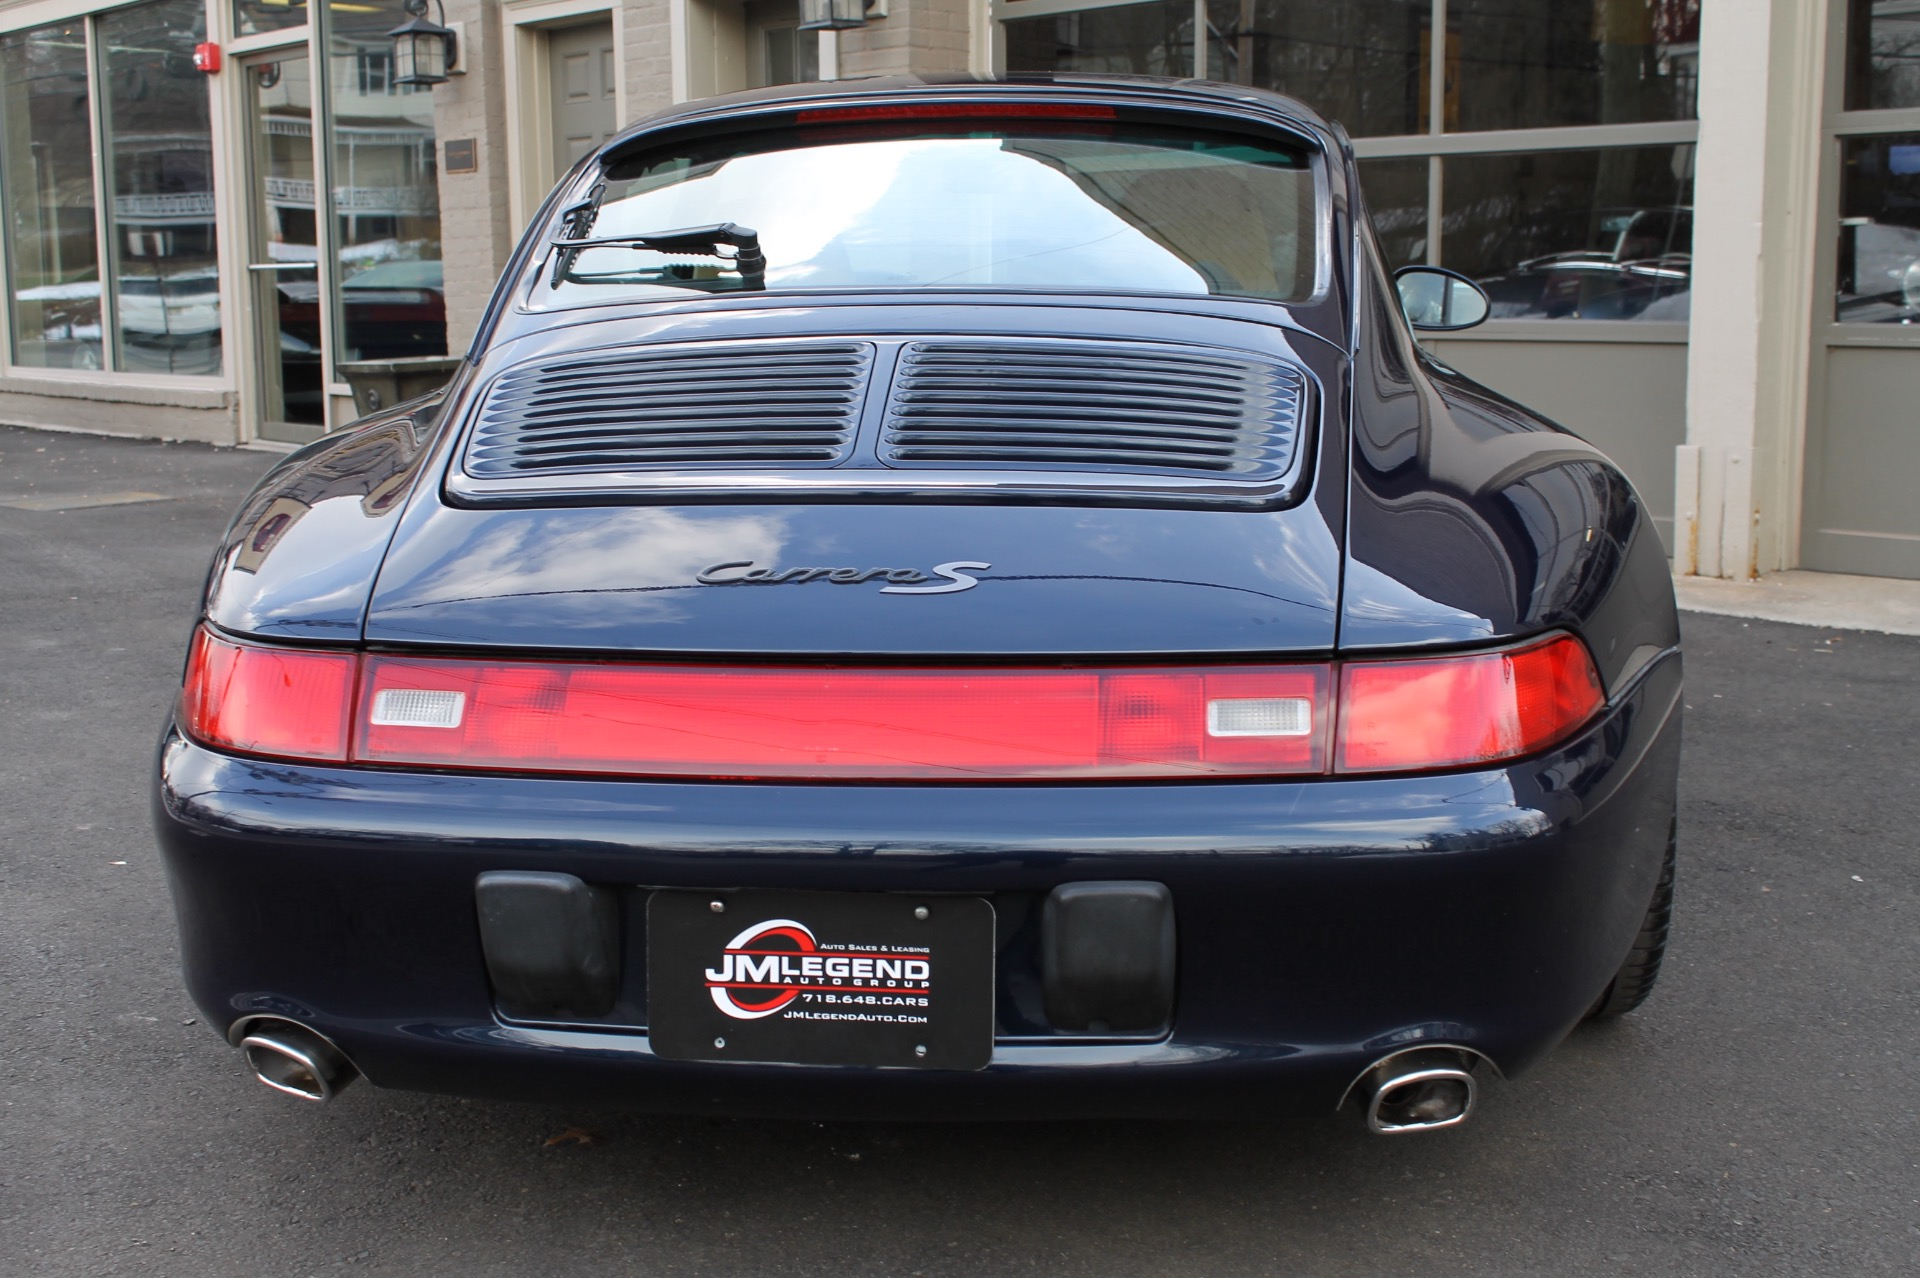 Used-1998-Porsche-911-Carrera-S